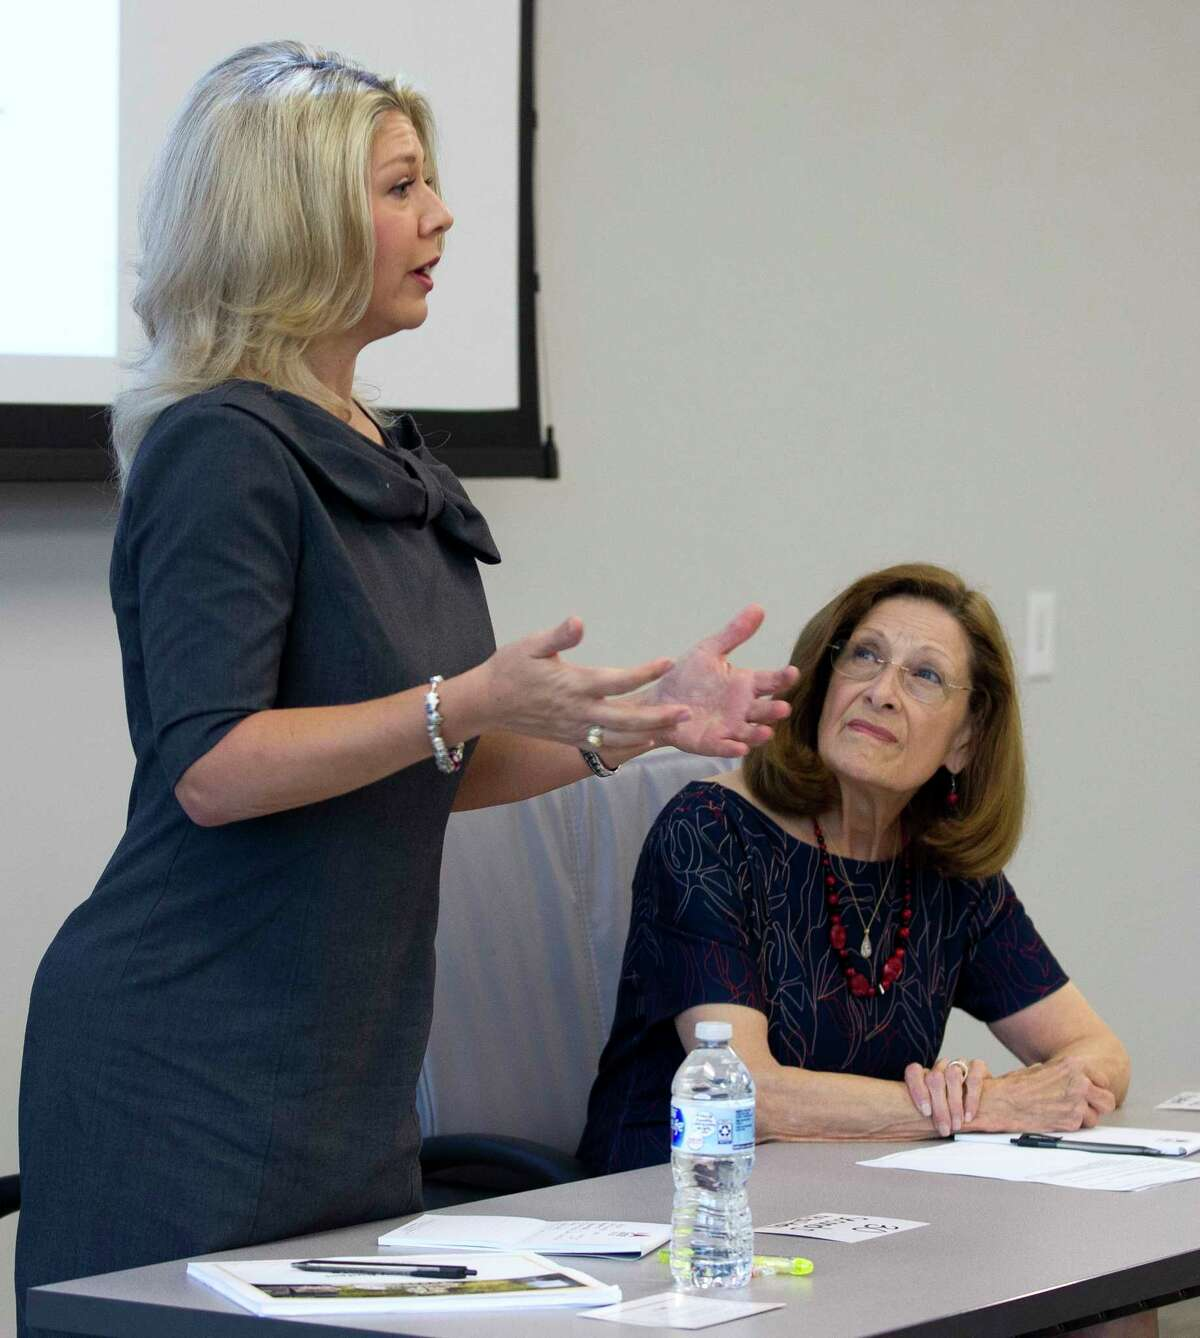 Laura Fillault, incumbent position 7 candidate for The Woodlands Township Board of Directors, speaks during a candidate forum at The Woodlands Area Chamber of Commerce, Friday, Sept. 22, 2017, in The Woodlands.